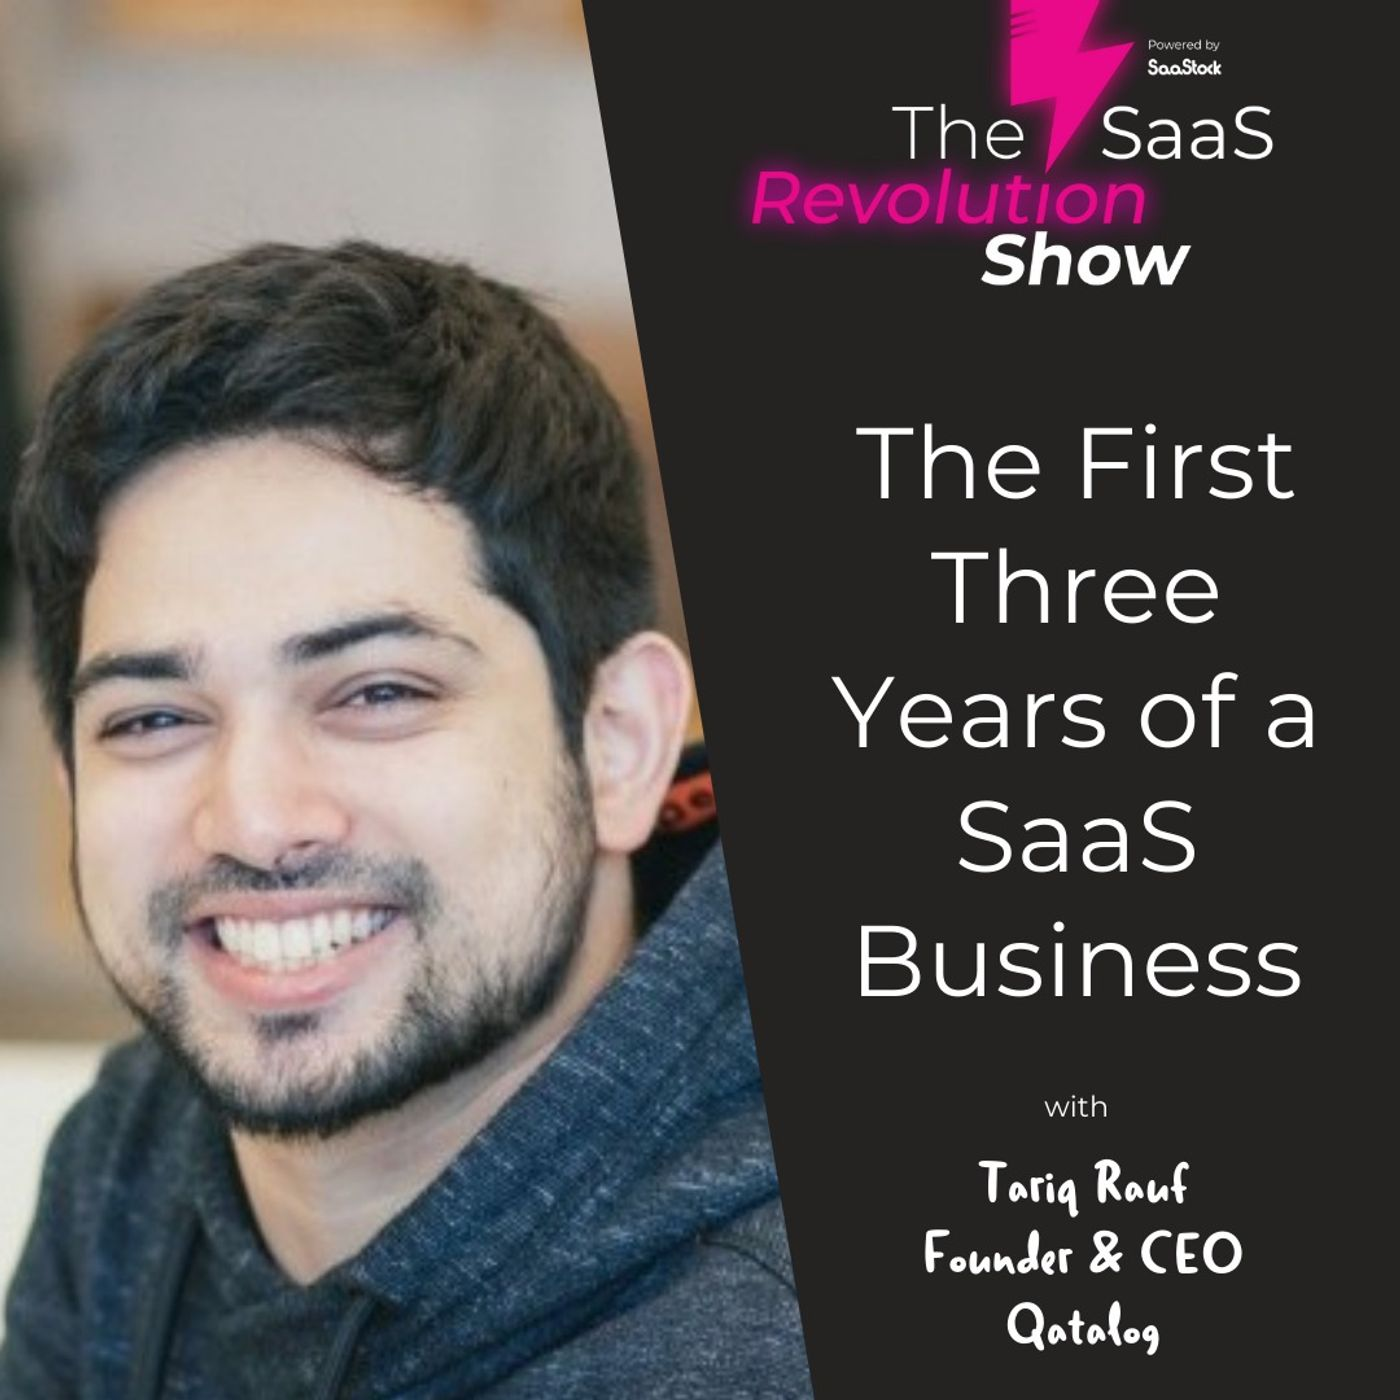 The First Three Years of a SaaS Business